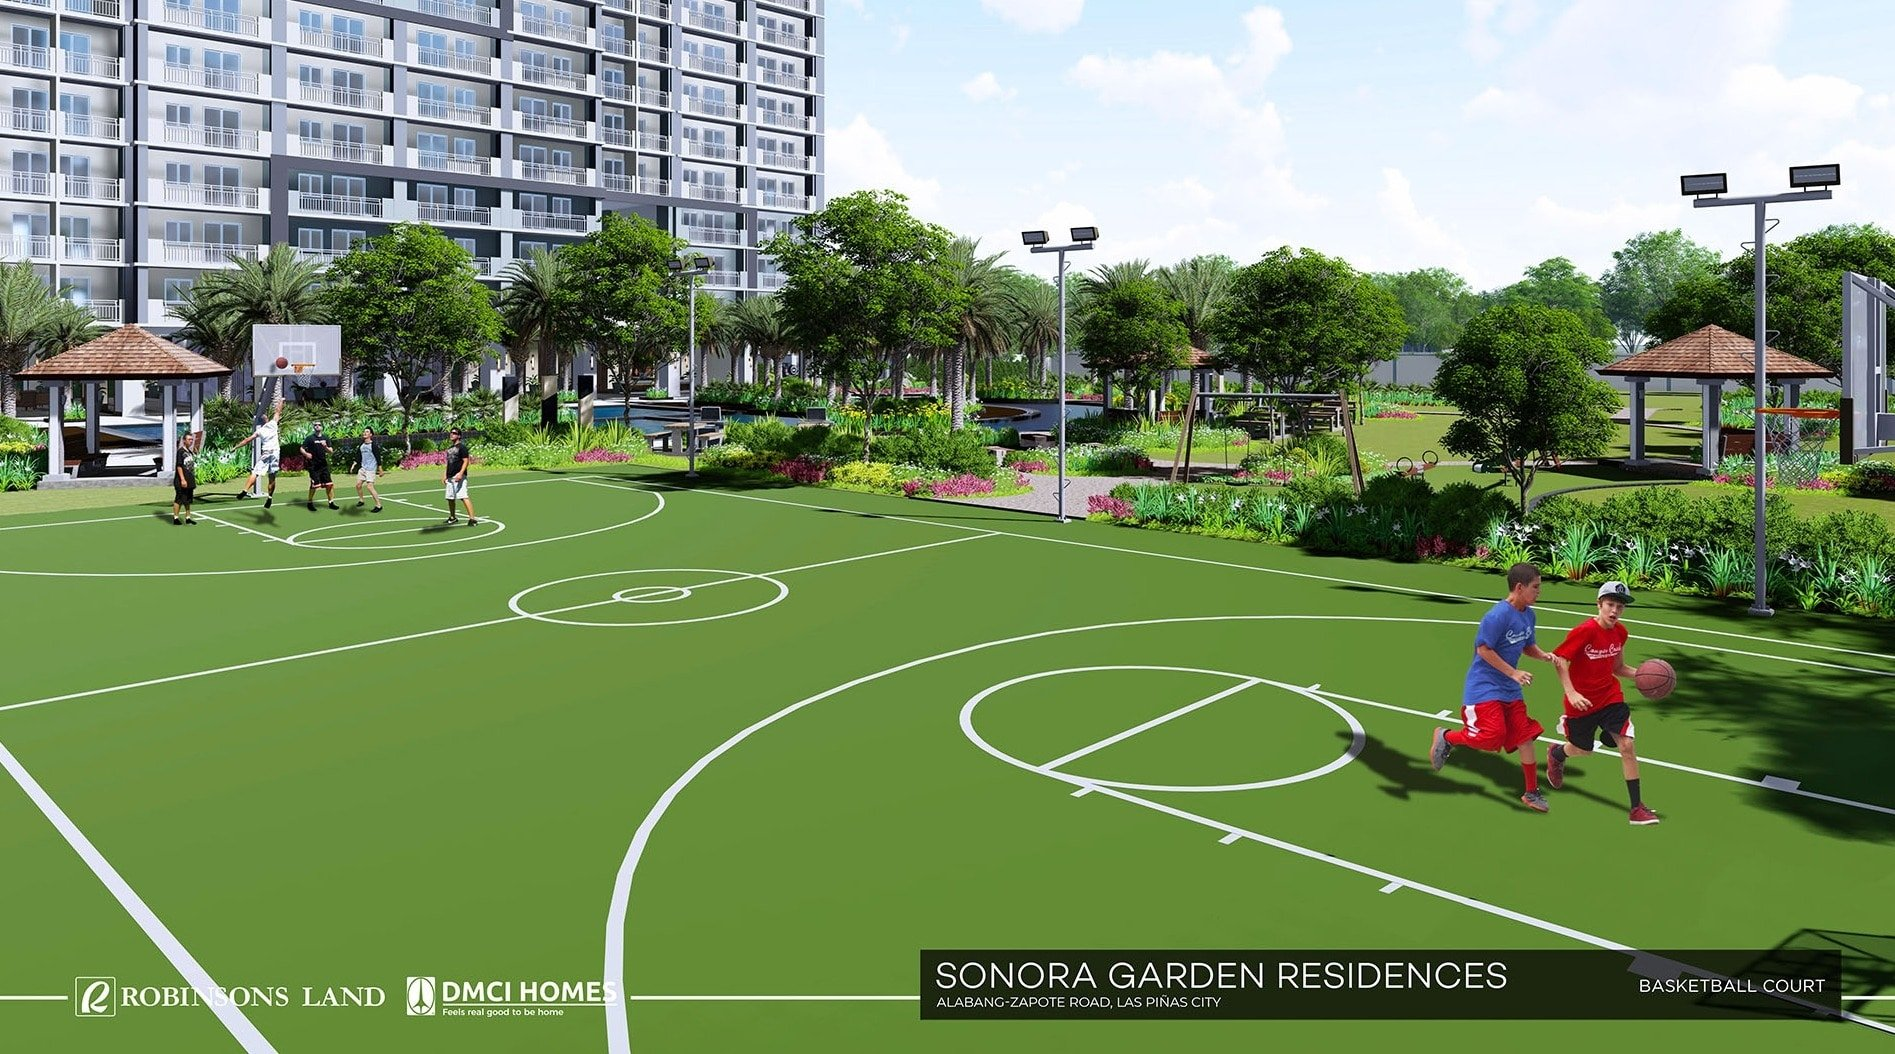 Sonora Garden Residences-Basketball Court-large